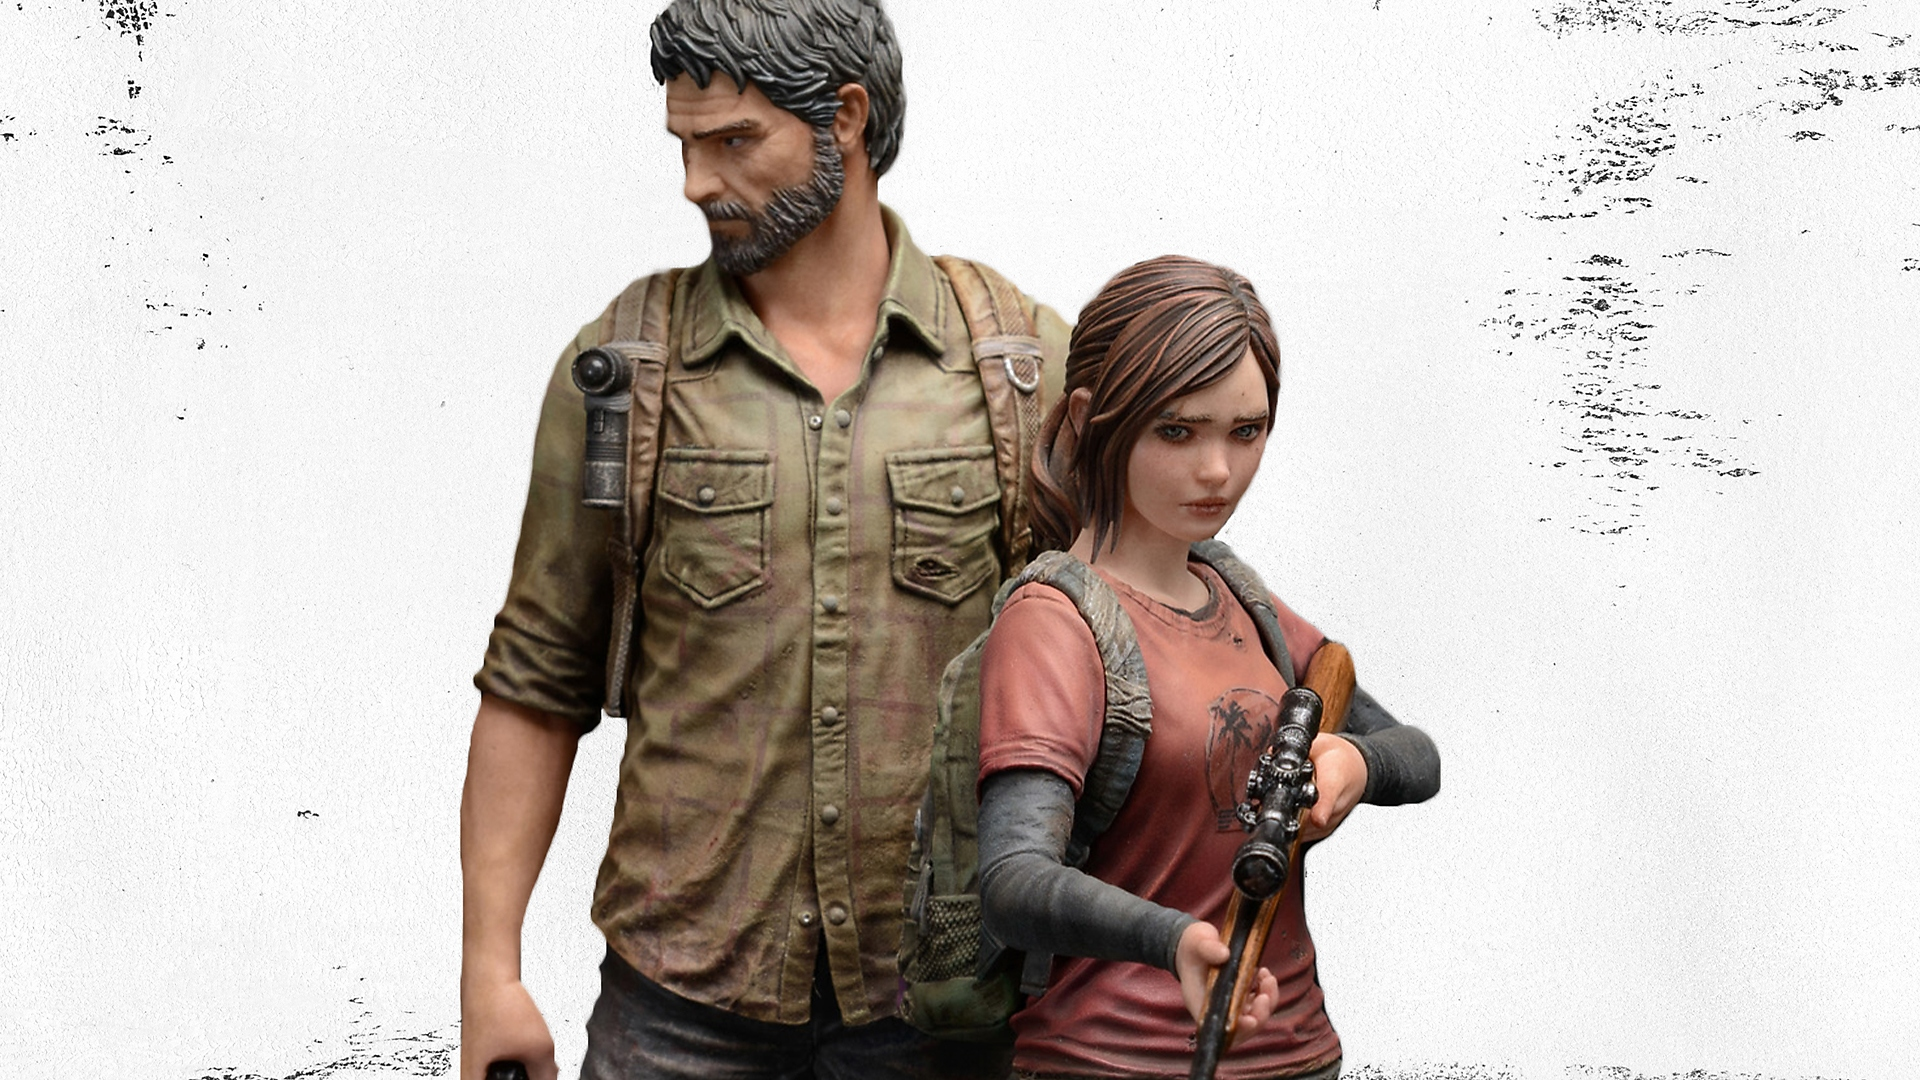 THE LAST OF US ELLIE AND JOEL STATUES FROM MAMEGYORAI